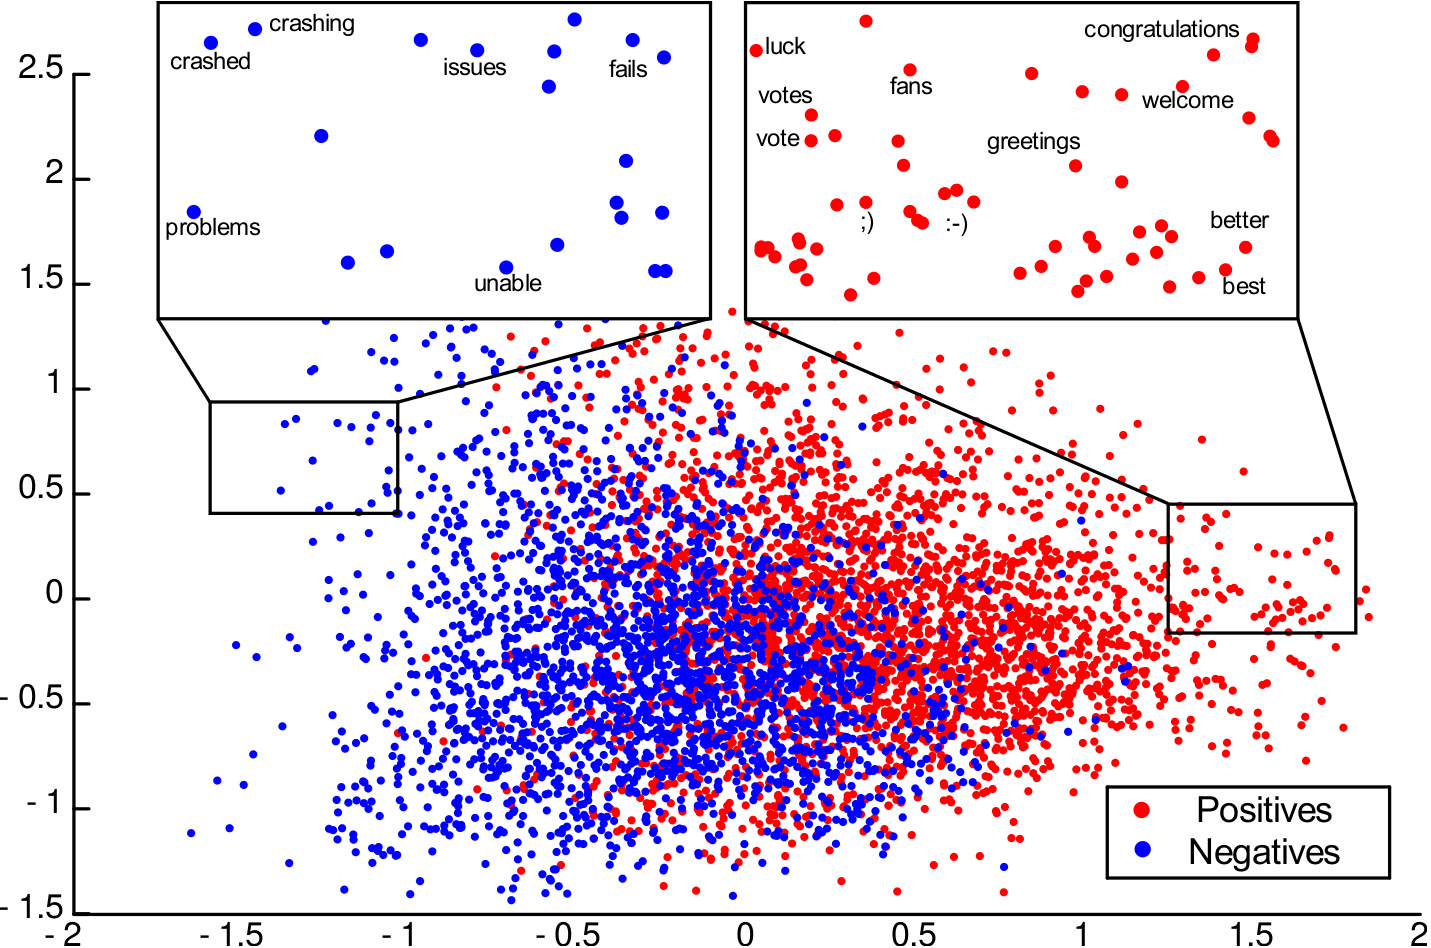 Visualization of CBOW word vectors trained on tweets of the SemEval-2013 dataset